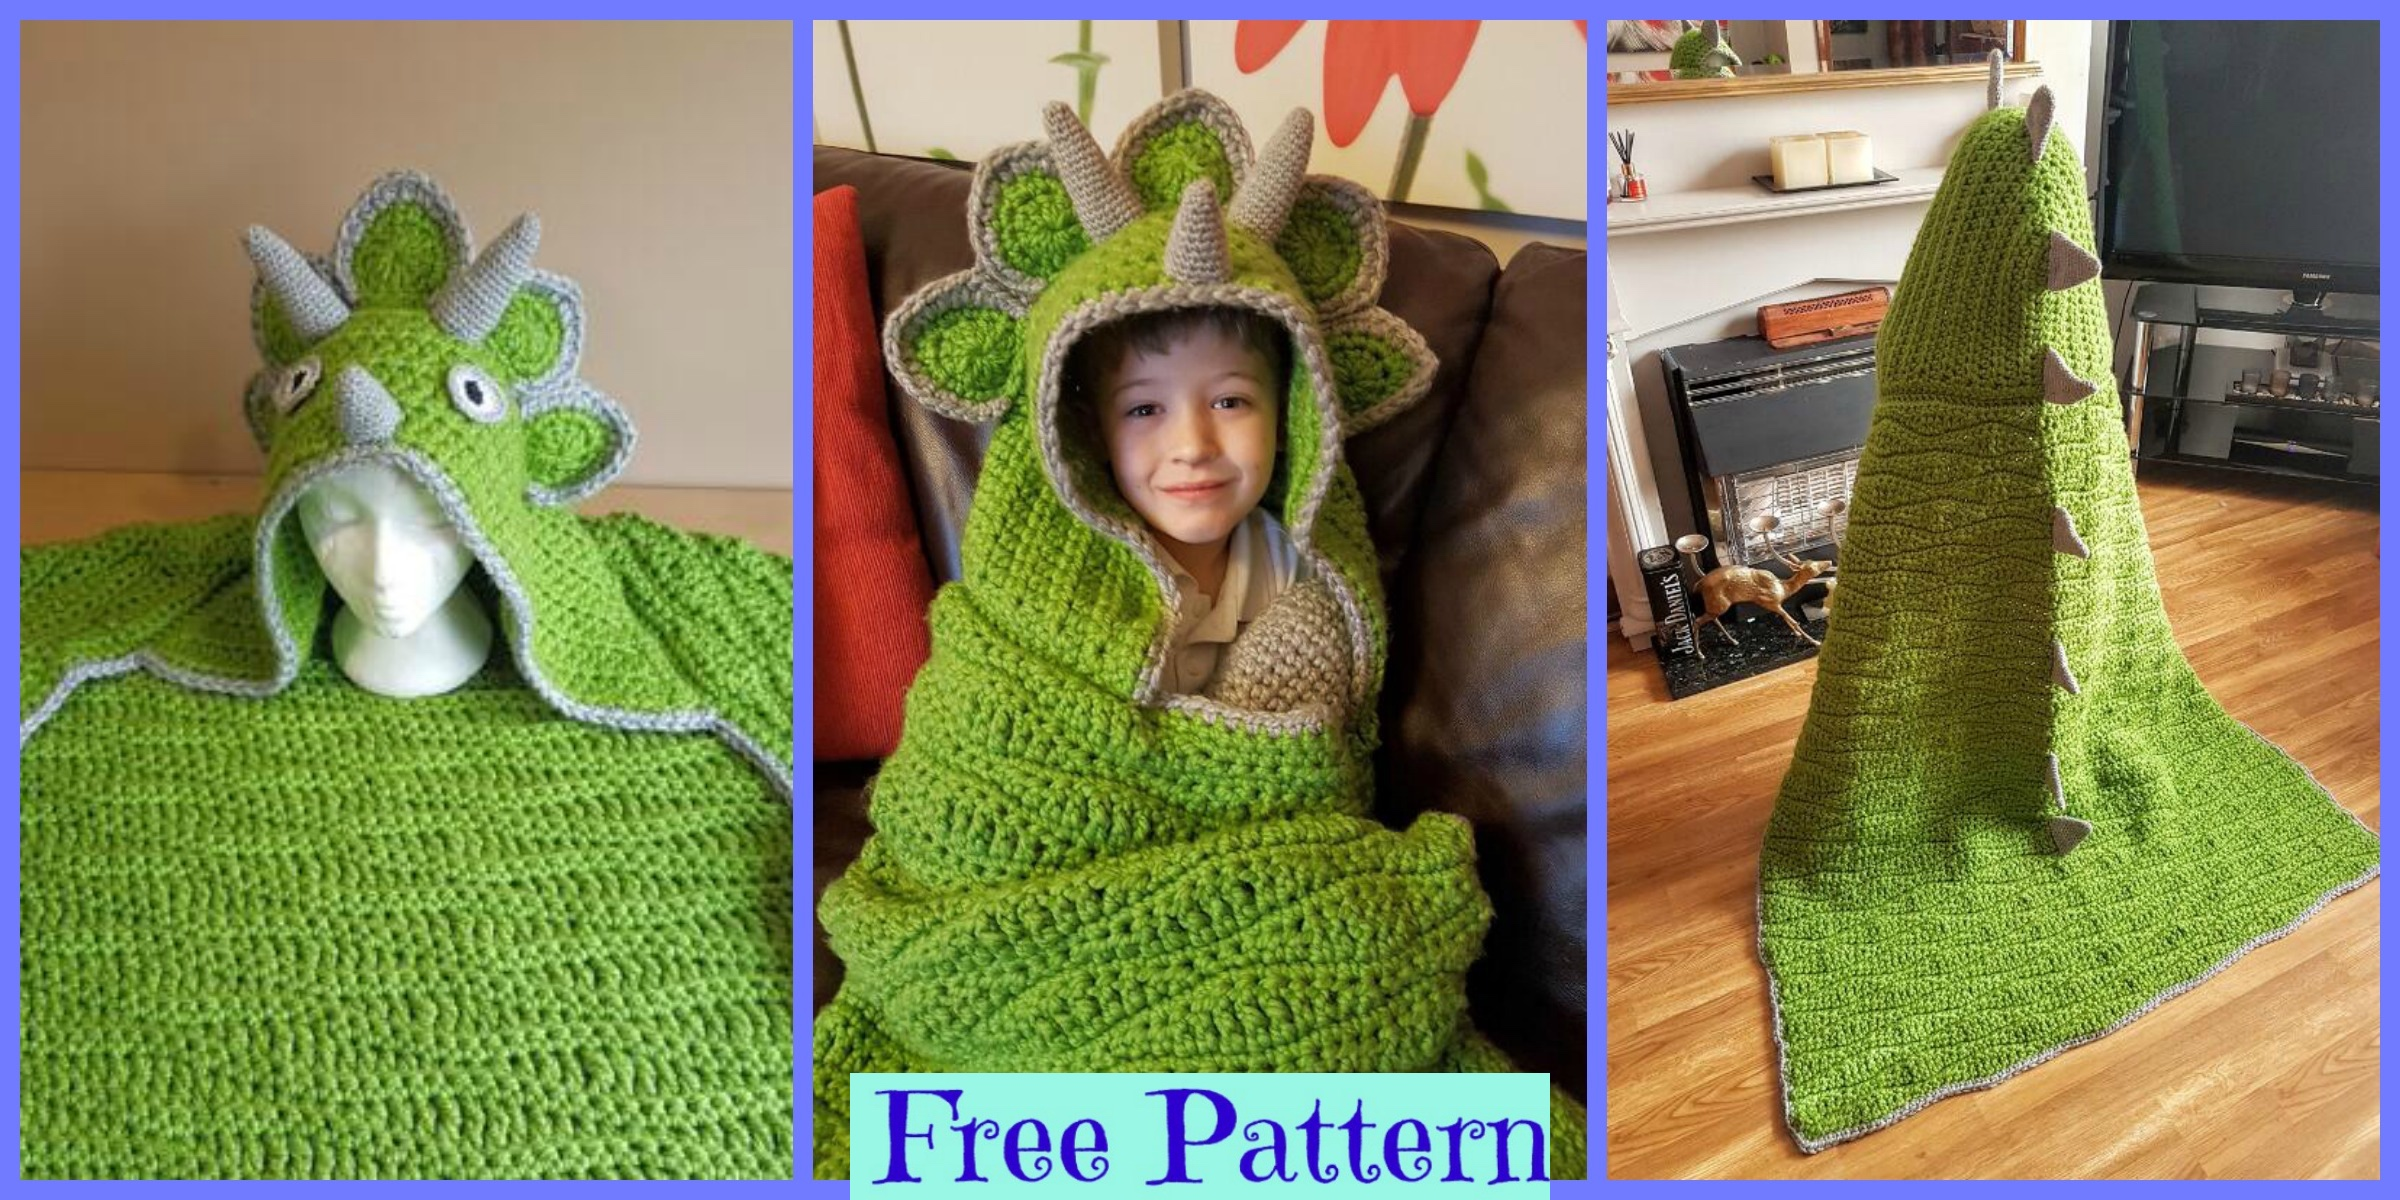 Crochet Hooded Dinosaur Blanket – Free Pattern